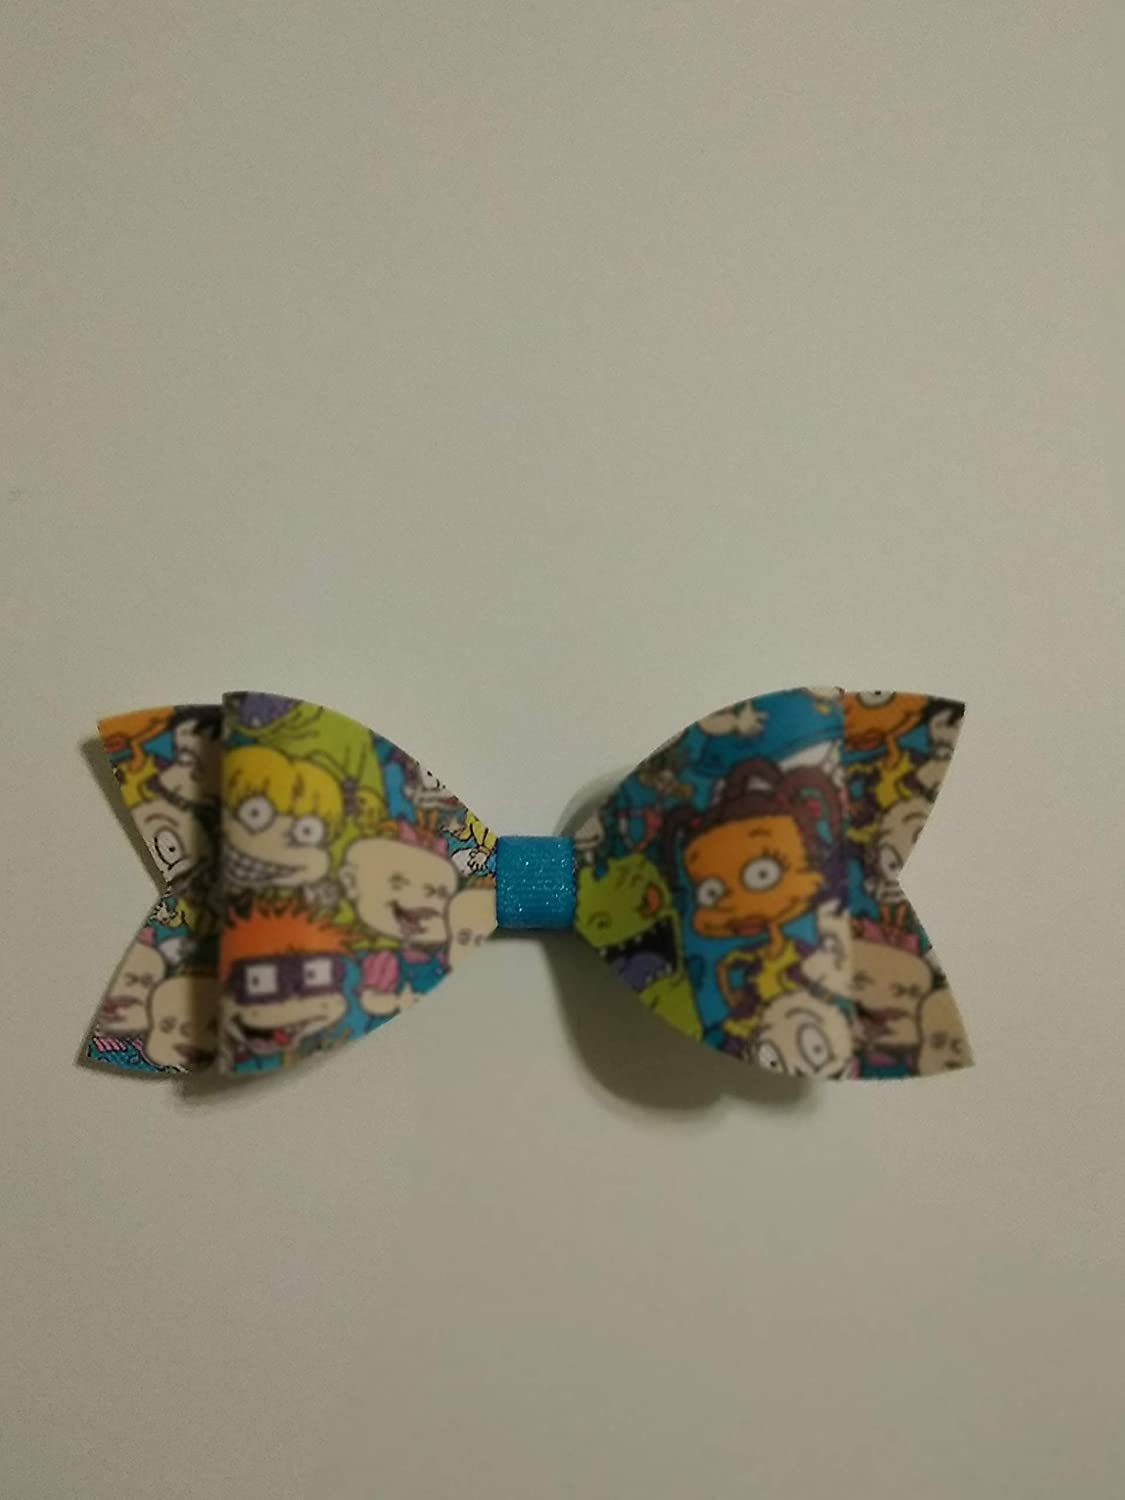 Rugrats Hair bow, Faux Leather hair bow, 90s cartoon bow, mini hair bow, 4' hair bow, toddler hair bow, Rugrats birthday hair bow